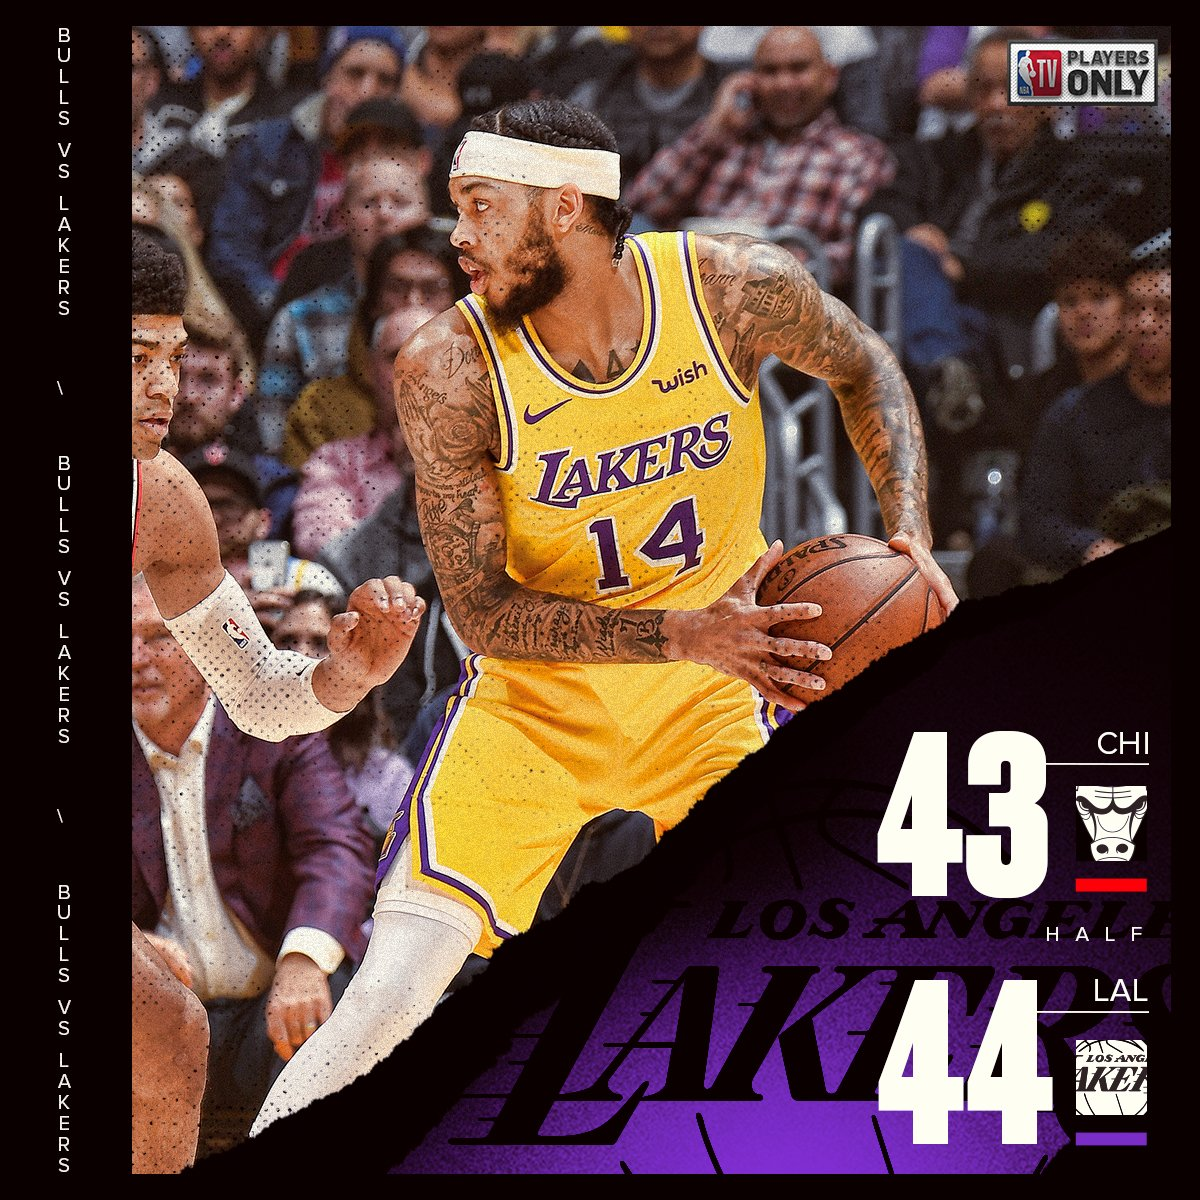 We've got a tight game at the break at Staples Center!  📺: NBA TV   #PlayersOnly